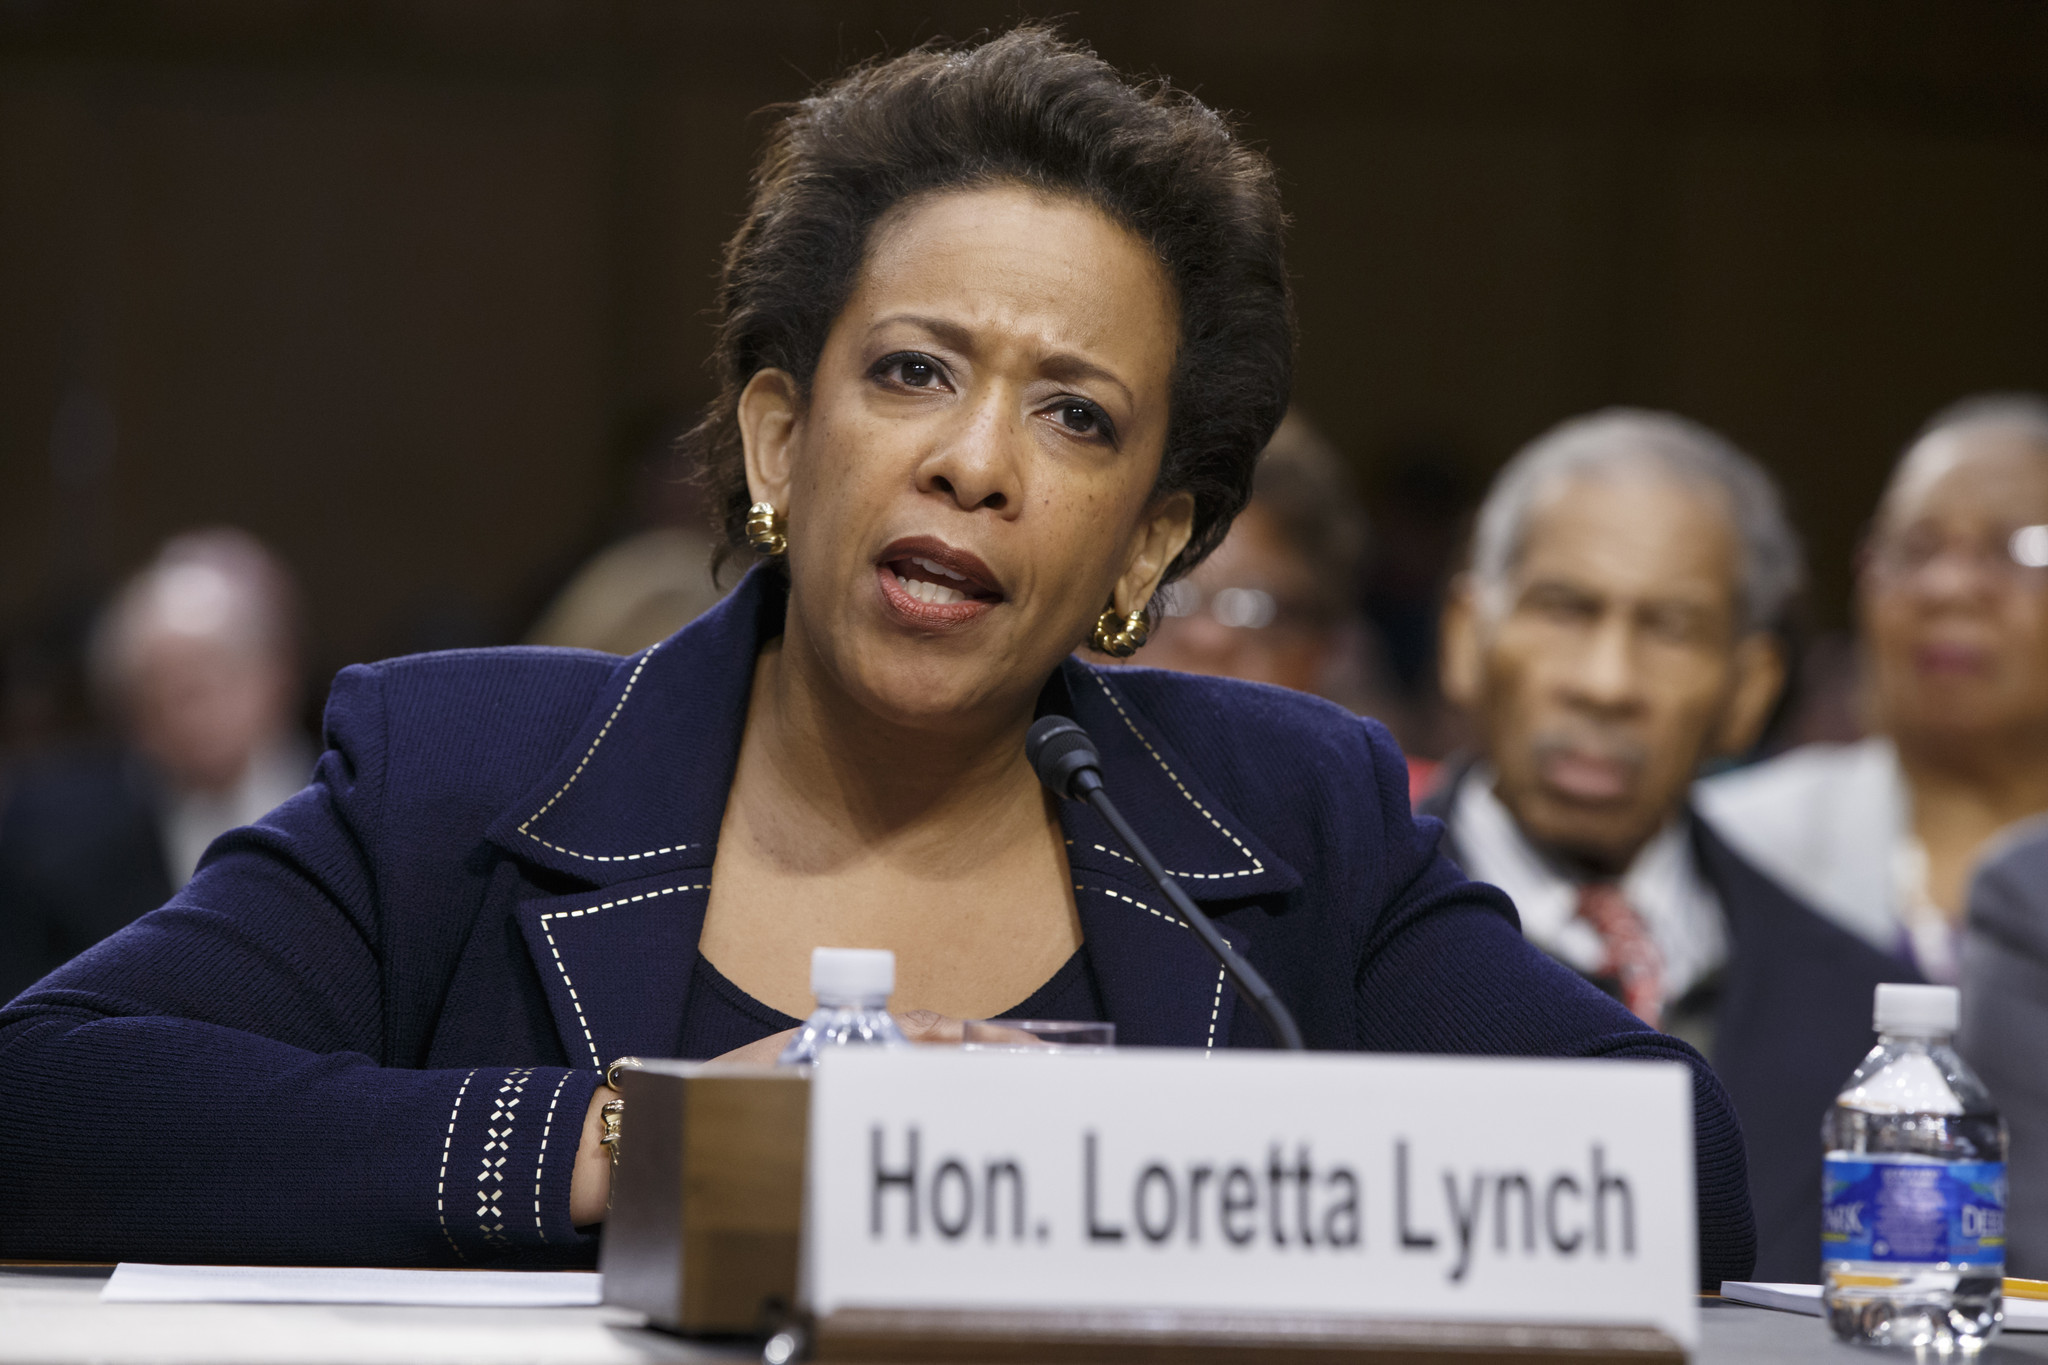 loretta lynch confirmed as attorney general after long